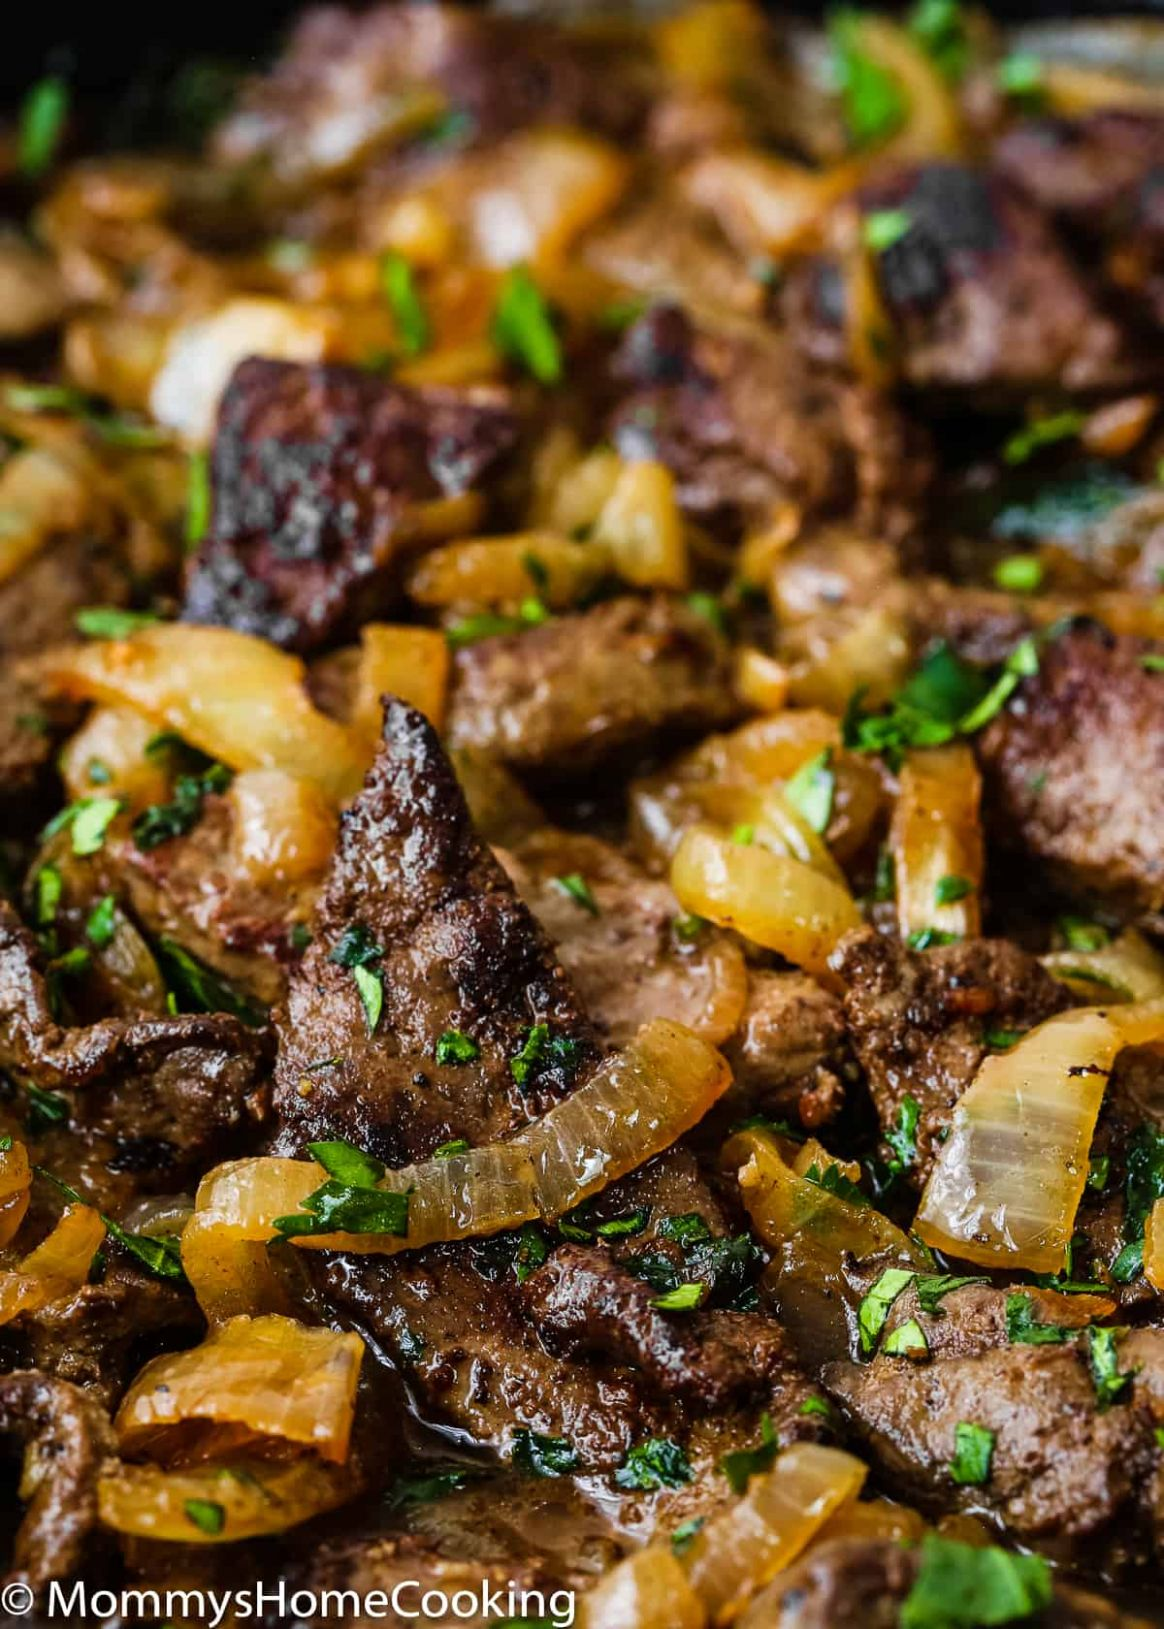 Venezuelan Beef Liver and Onions - Mommy's Home Cooking